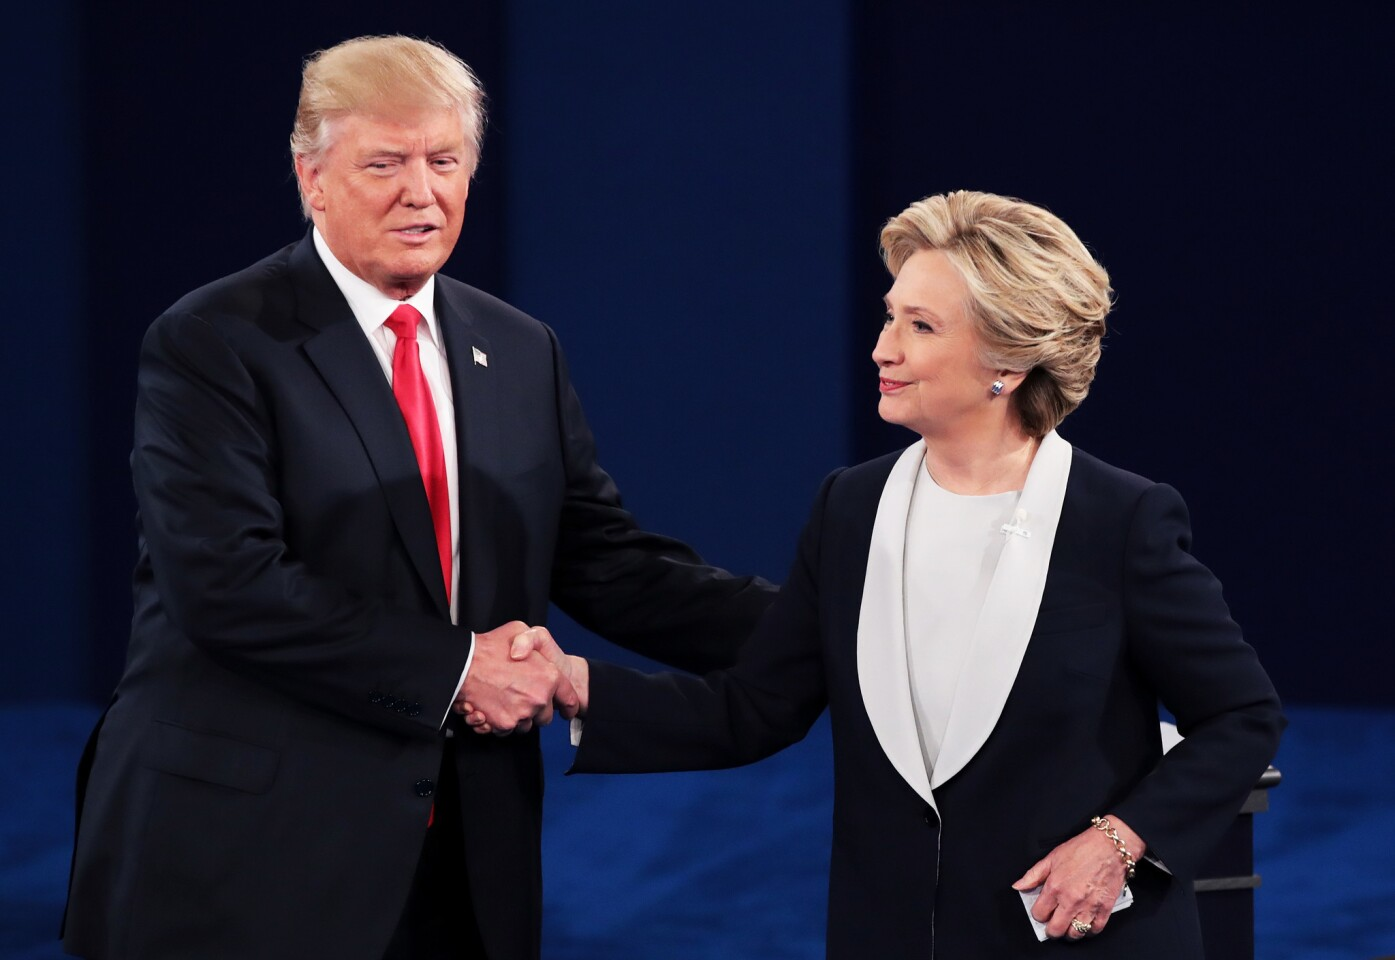 Donald Trump and Hillary Clinton shake hands at the end of their town hall debate.